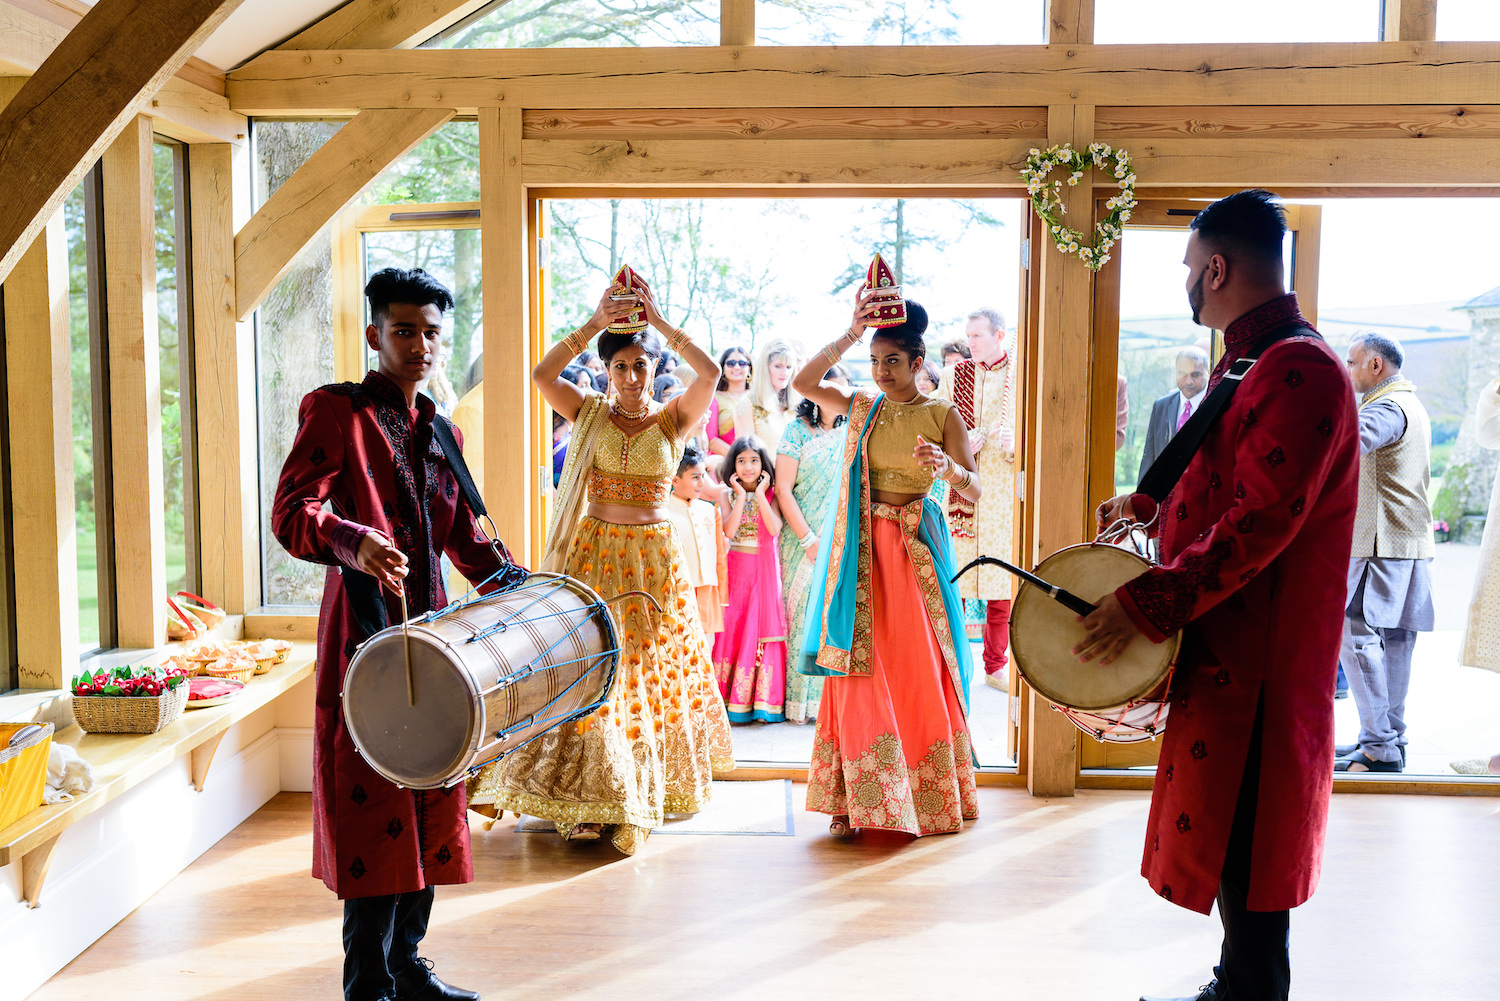 Colourful lively Indian wedding ceremony